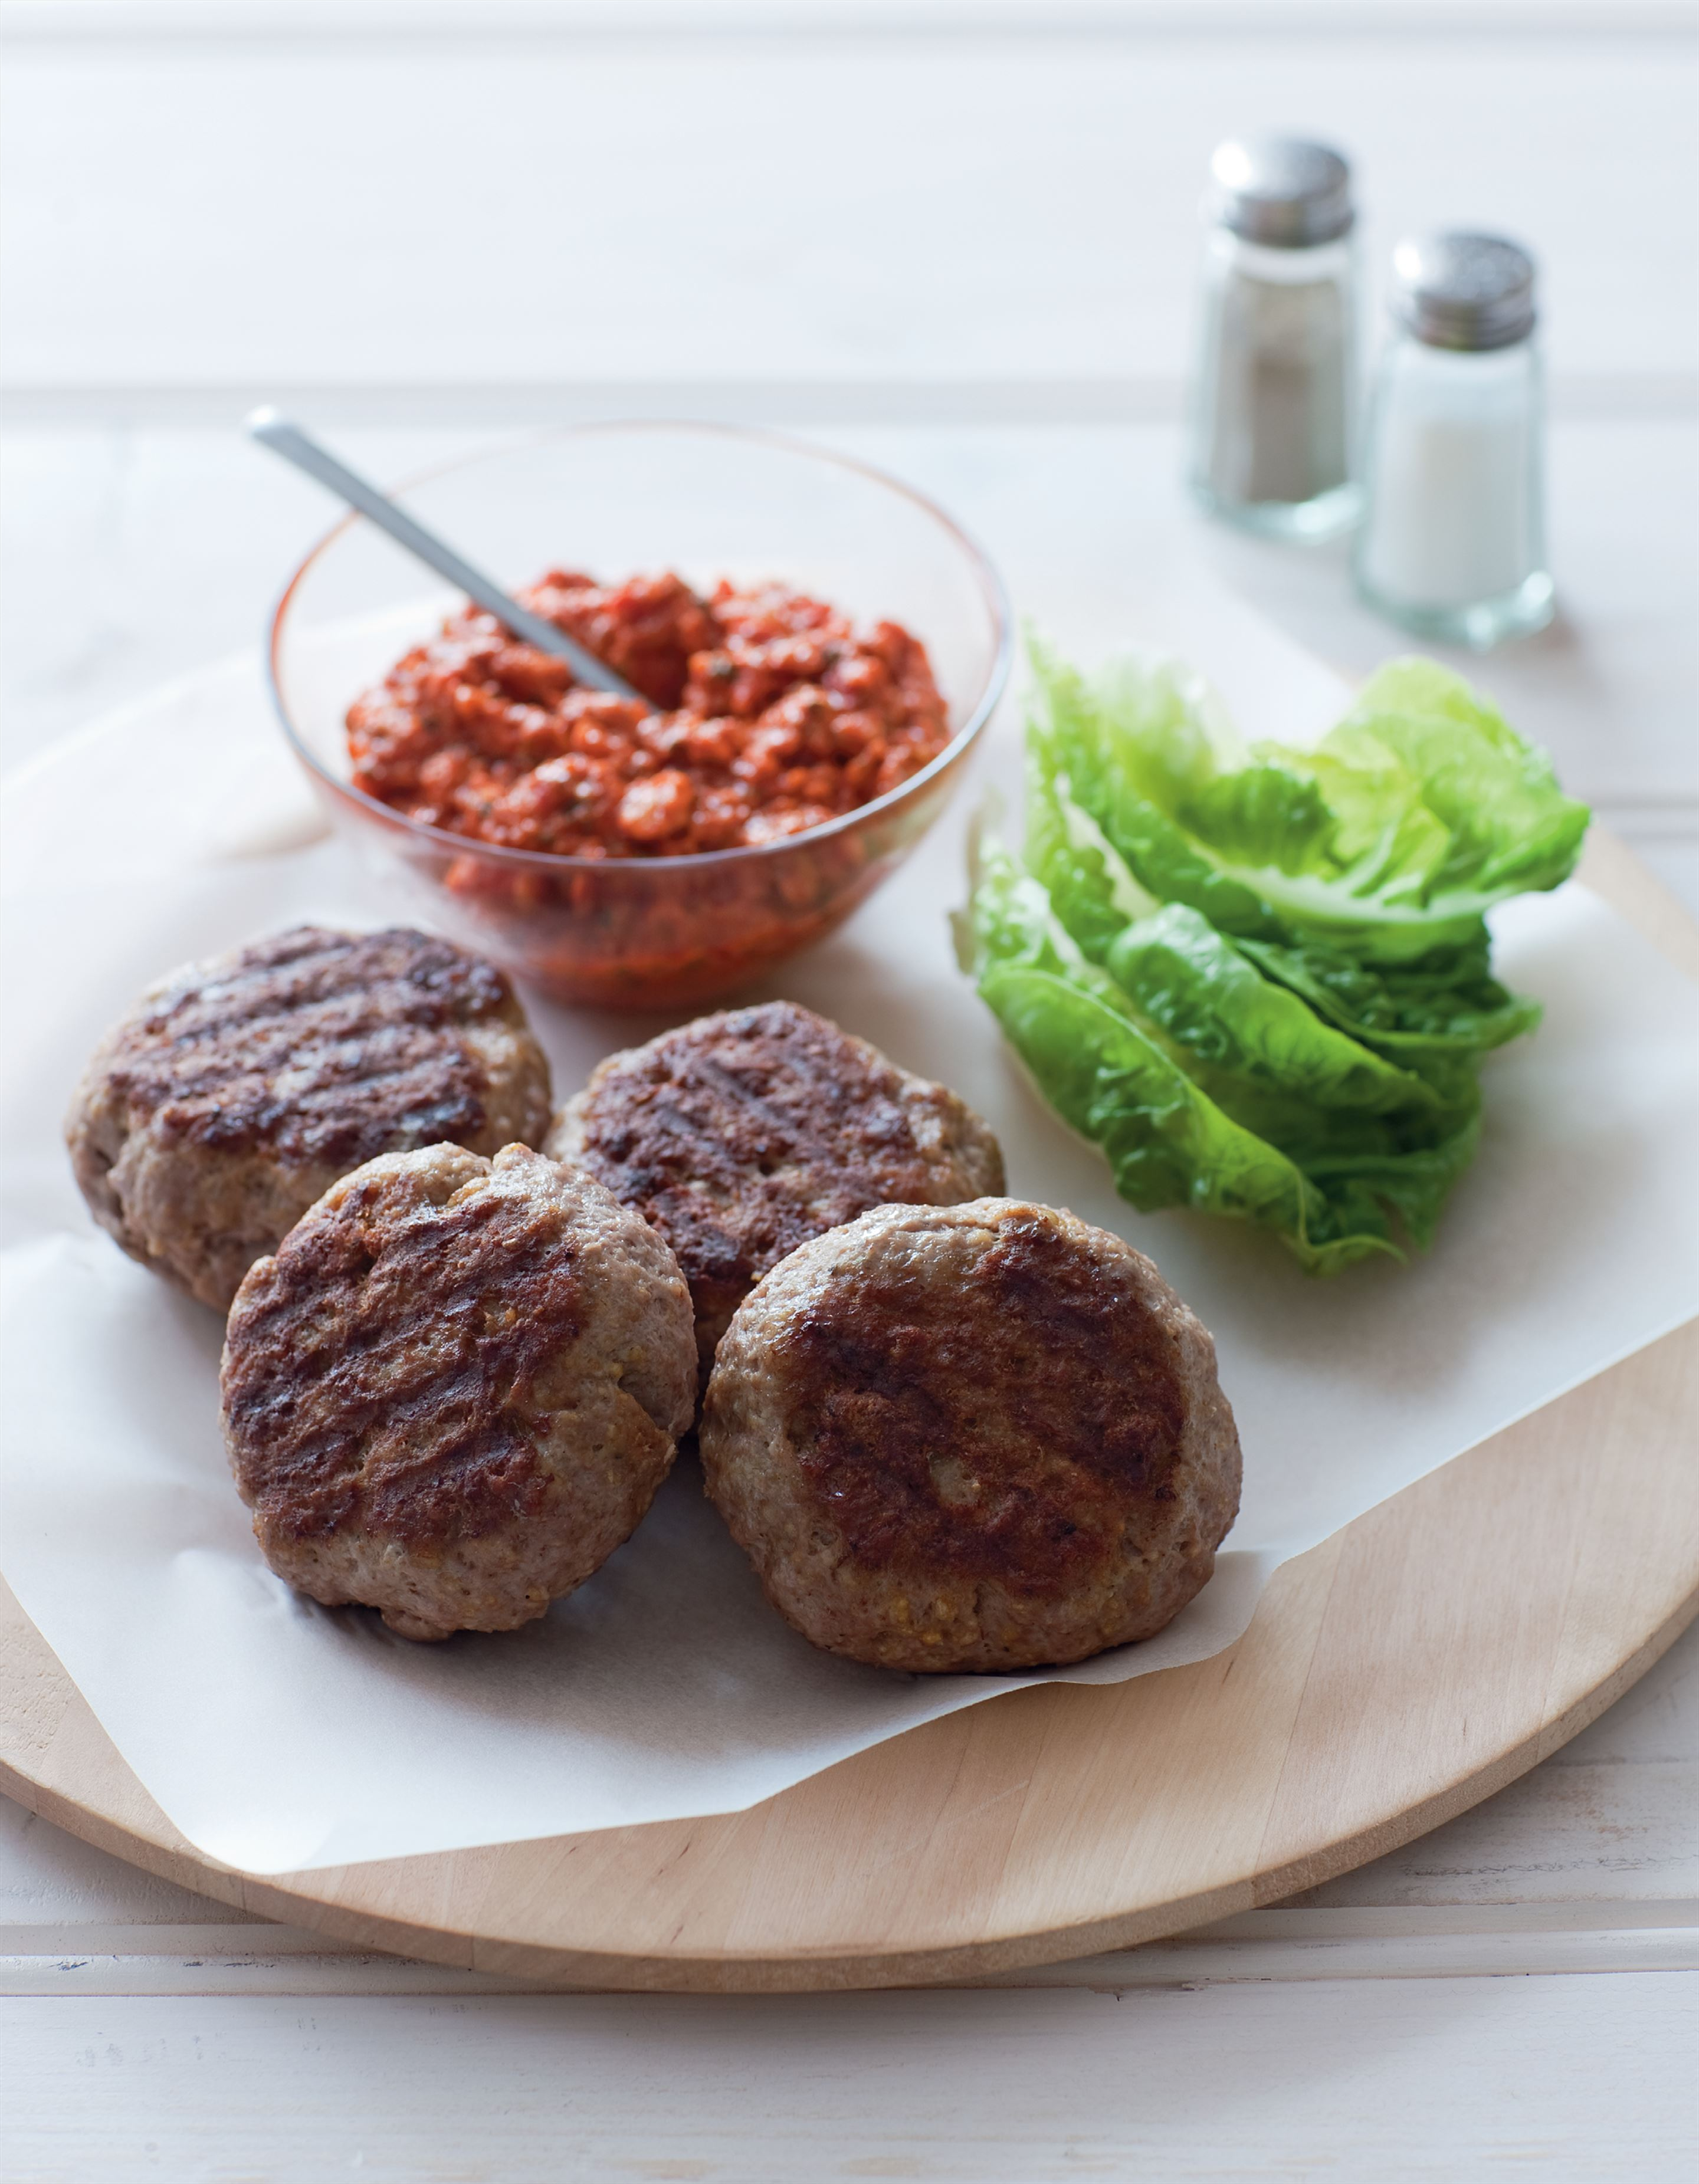 Lamb patties with romesco sauce